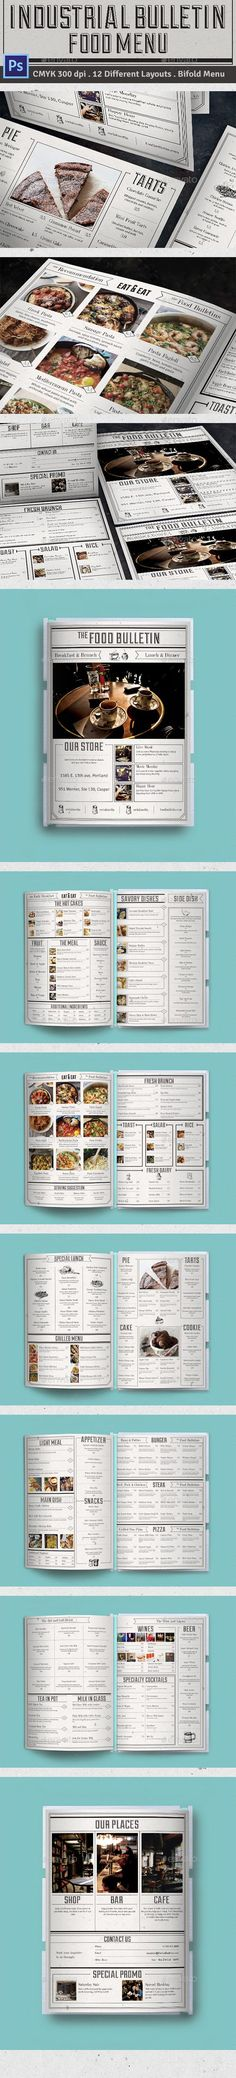 Bulletin Food Menu Template PSD #design Download: http://graphicriver.net/item/bulletin-food-menu/14330331?ref=ksioks